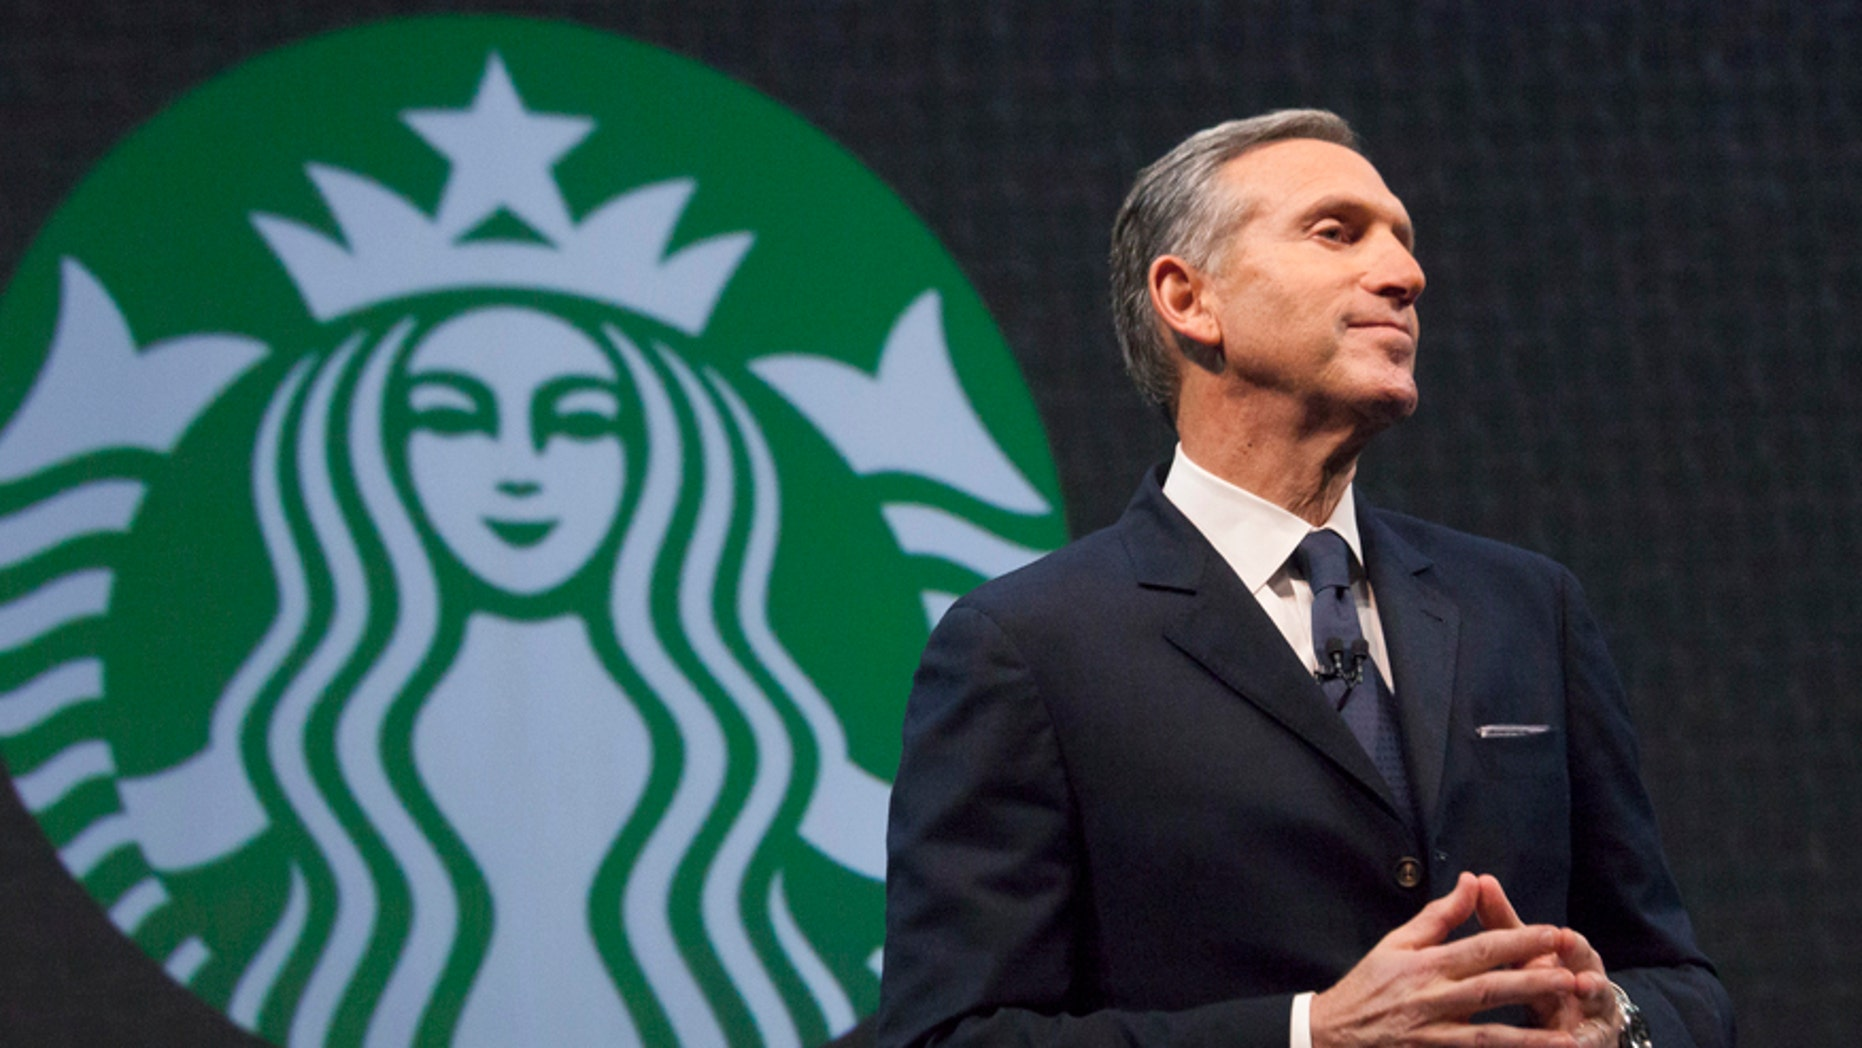 The rags-to-riches billionaire built Starbucks from the ground up and his chain has recently made waves on social justice issues, but many are saying they don't want to see him in the Oval Office.